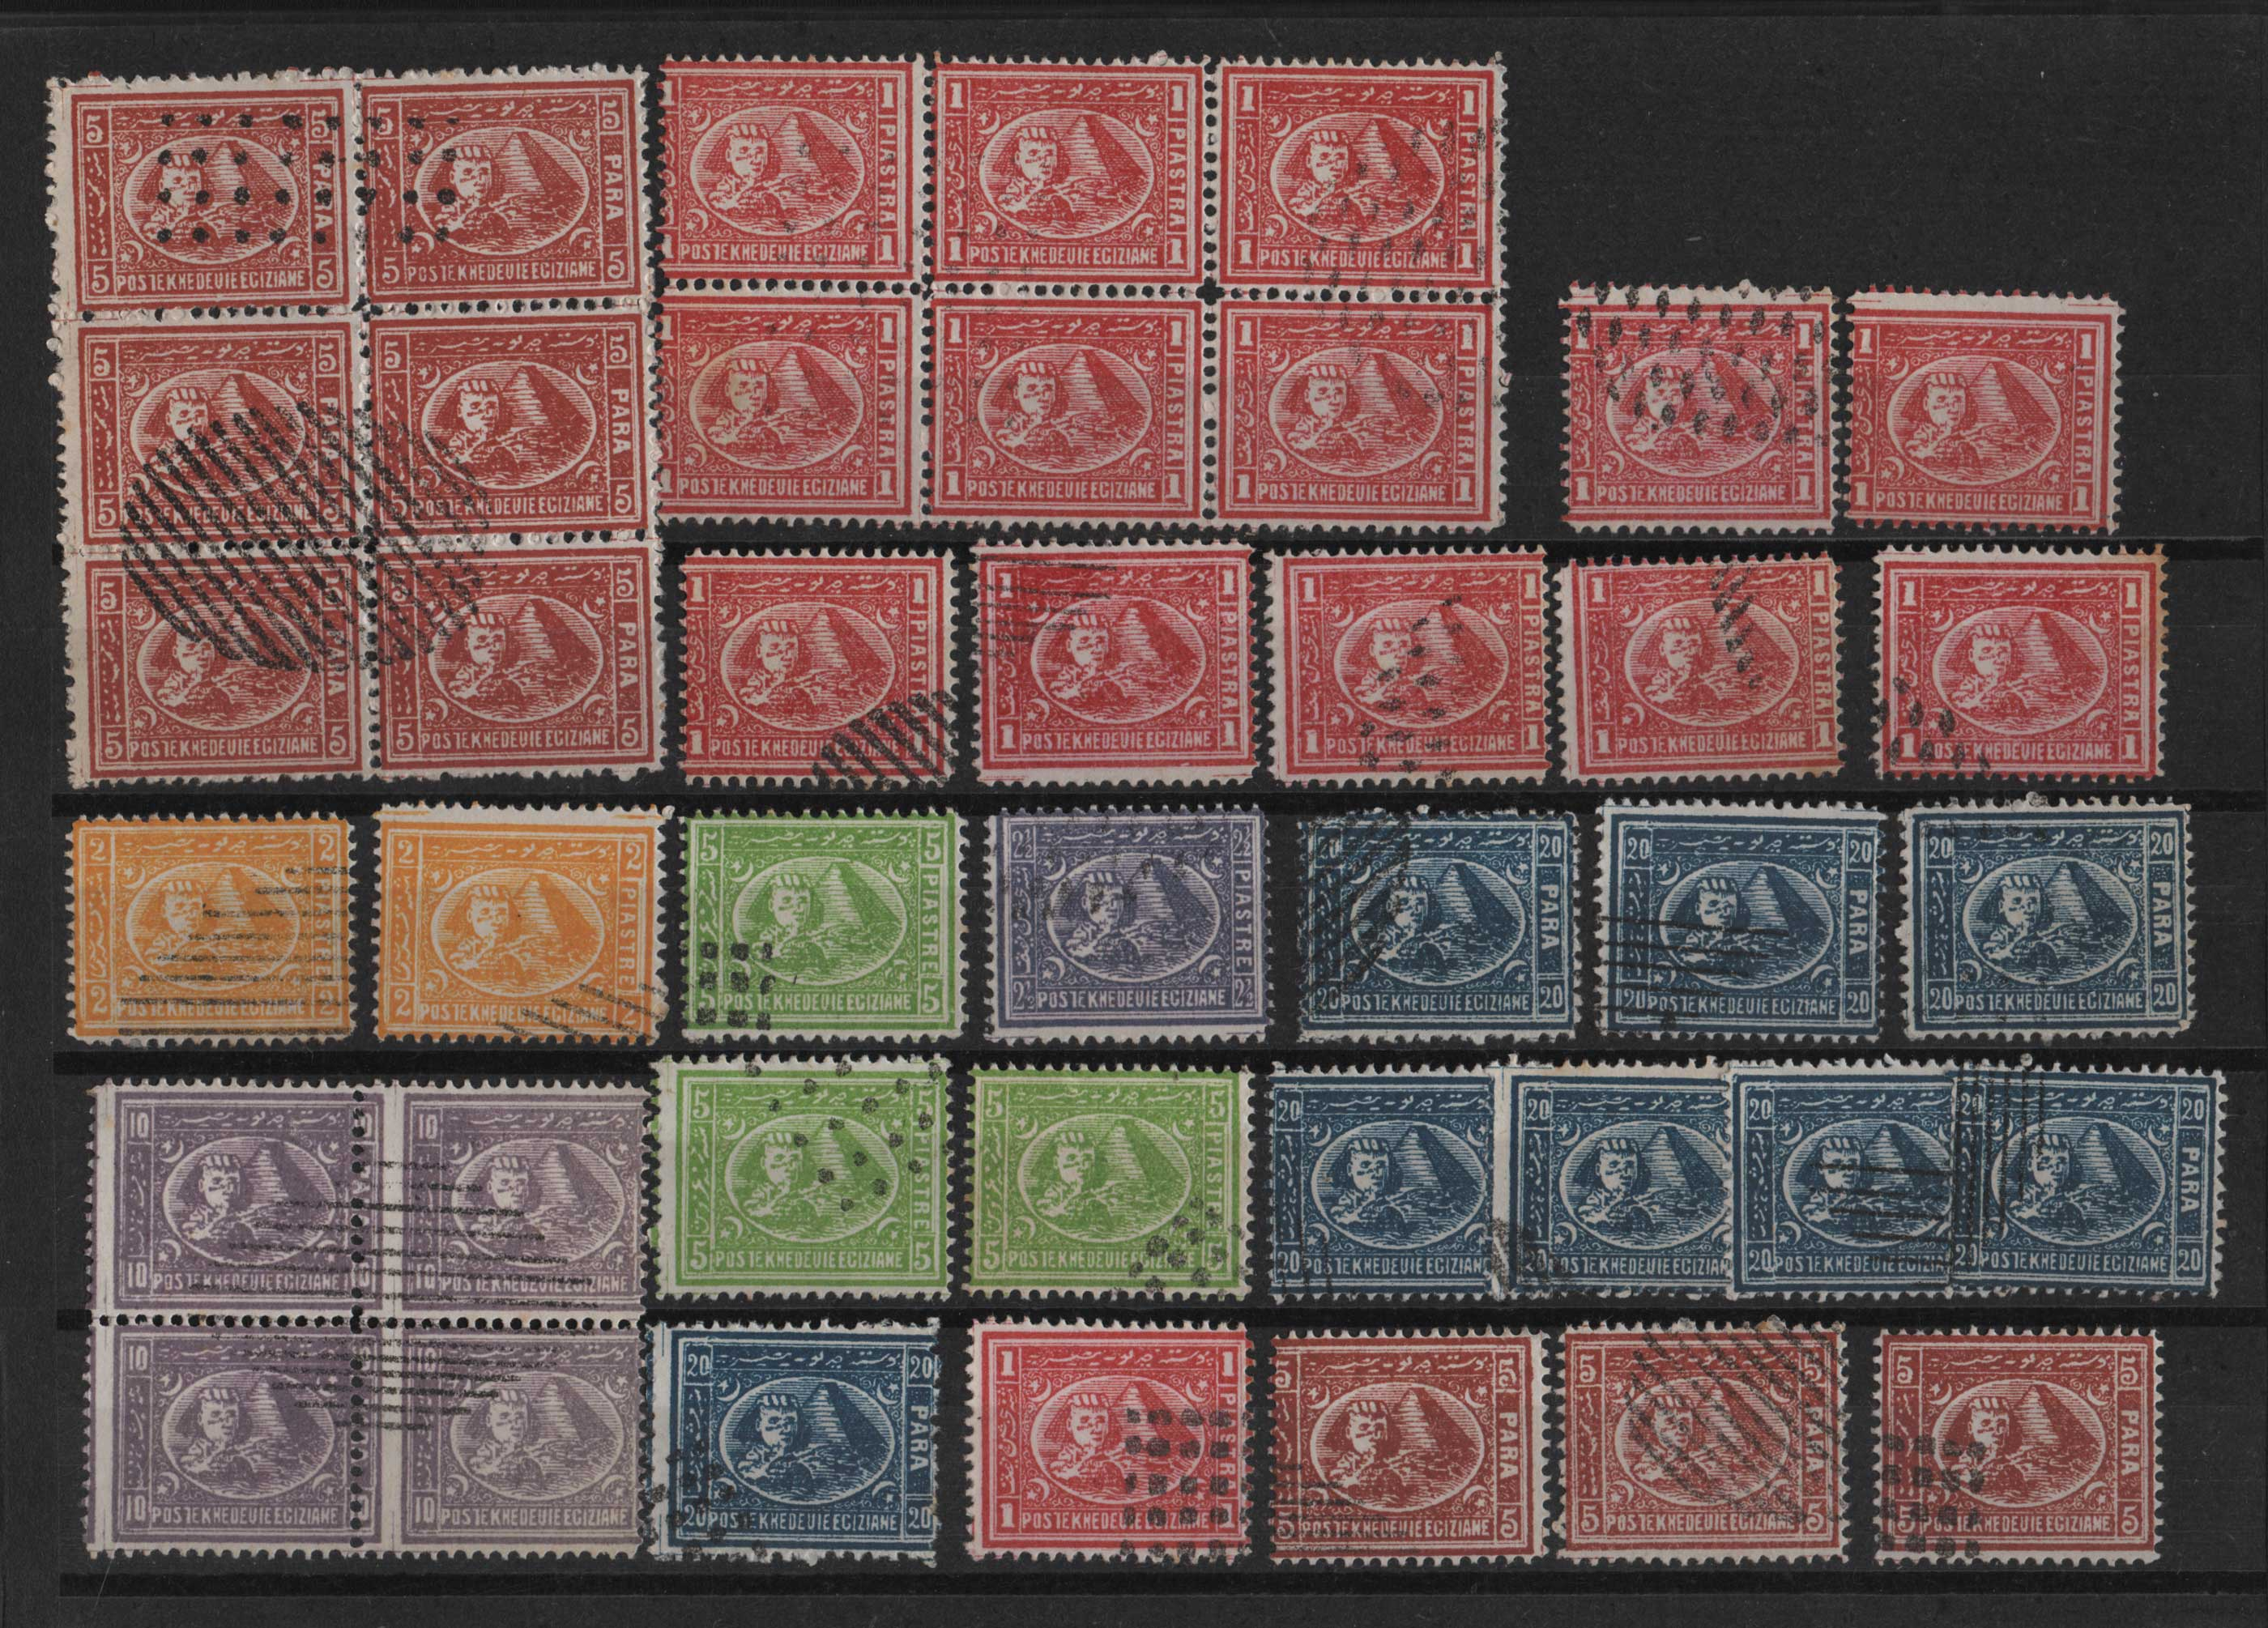 Lot 1821 - - COLLECTIONS collections -  Athens Auctions Public Auction 76 General Stamp Sale